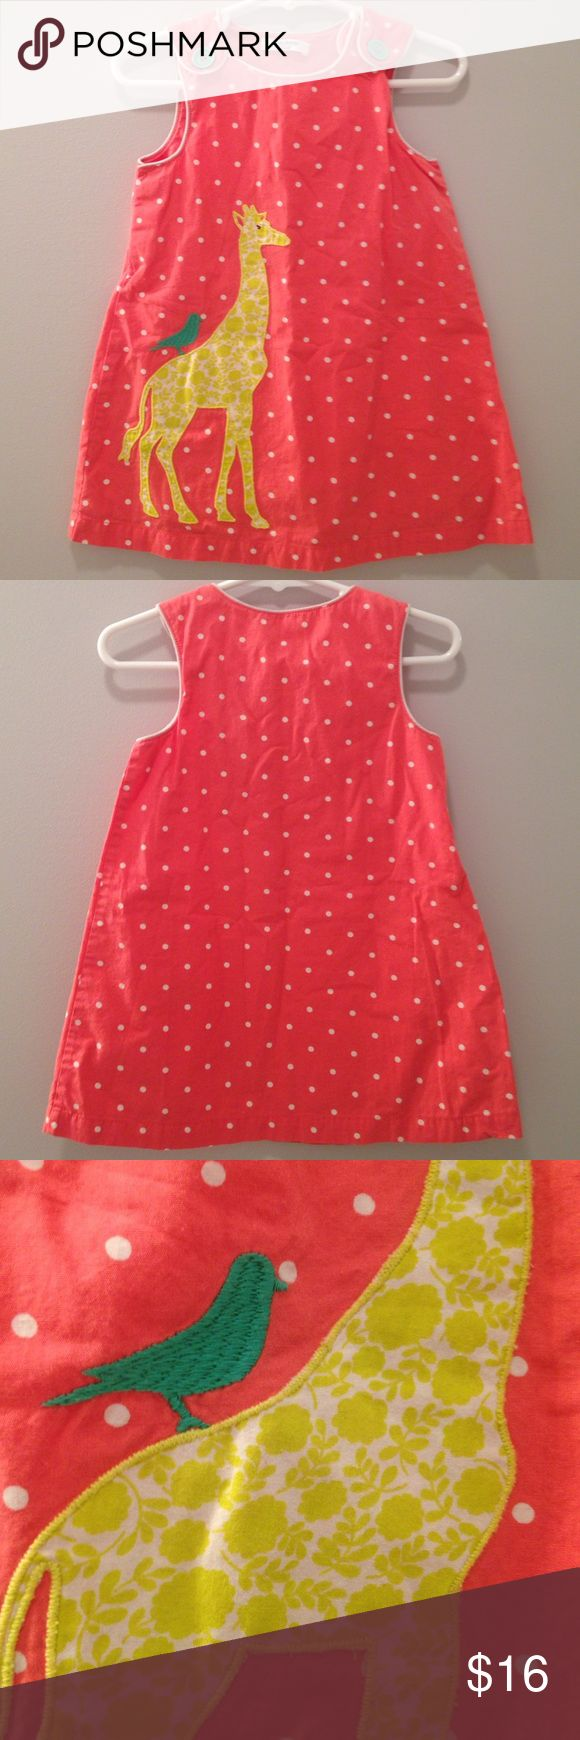 Baby Boden Dress Coral White Dots 12-18M Sweet summer dress by Baby Boden! The coral cotton dress (12-18M) is accessorized with white dots, a giraffe and bird. There are two mint green buttons at the top of the dress, along with two smaller mint green buttons that are hidden on the side. The dress has no stains or tears and just minimal signs of wear. Mini Boden Dresses Casual